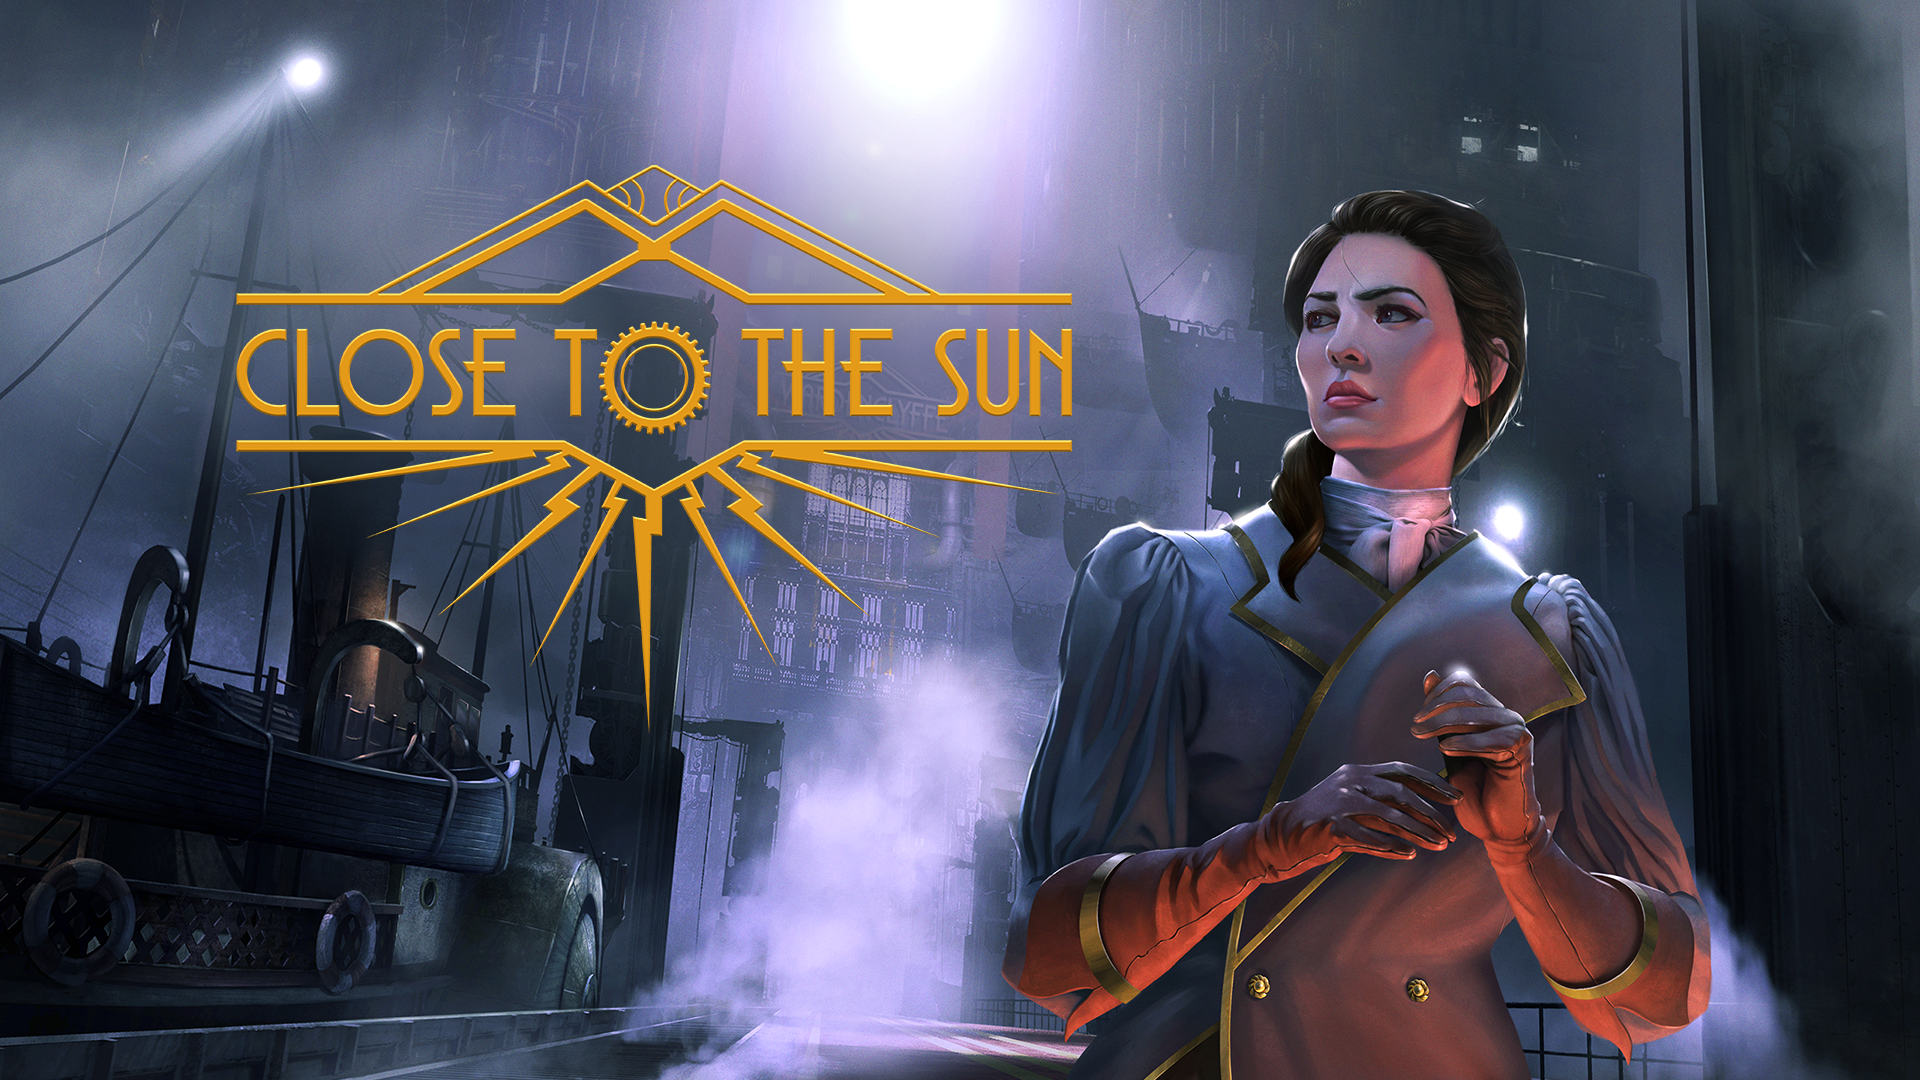 Survive Aboard A Mysterious Ship In An Alternate Version Of The 19th Century. 'Close To The Sun' Is Available For Pre-Purchase Now!